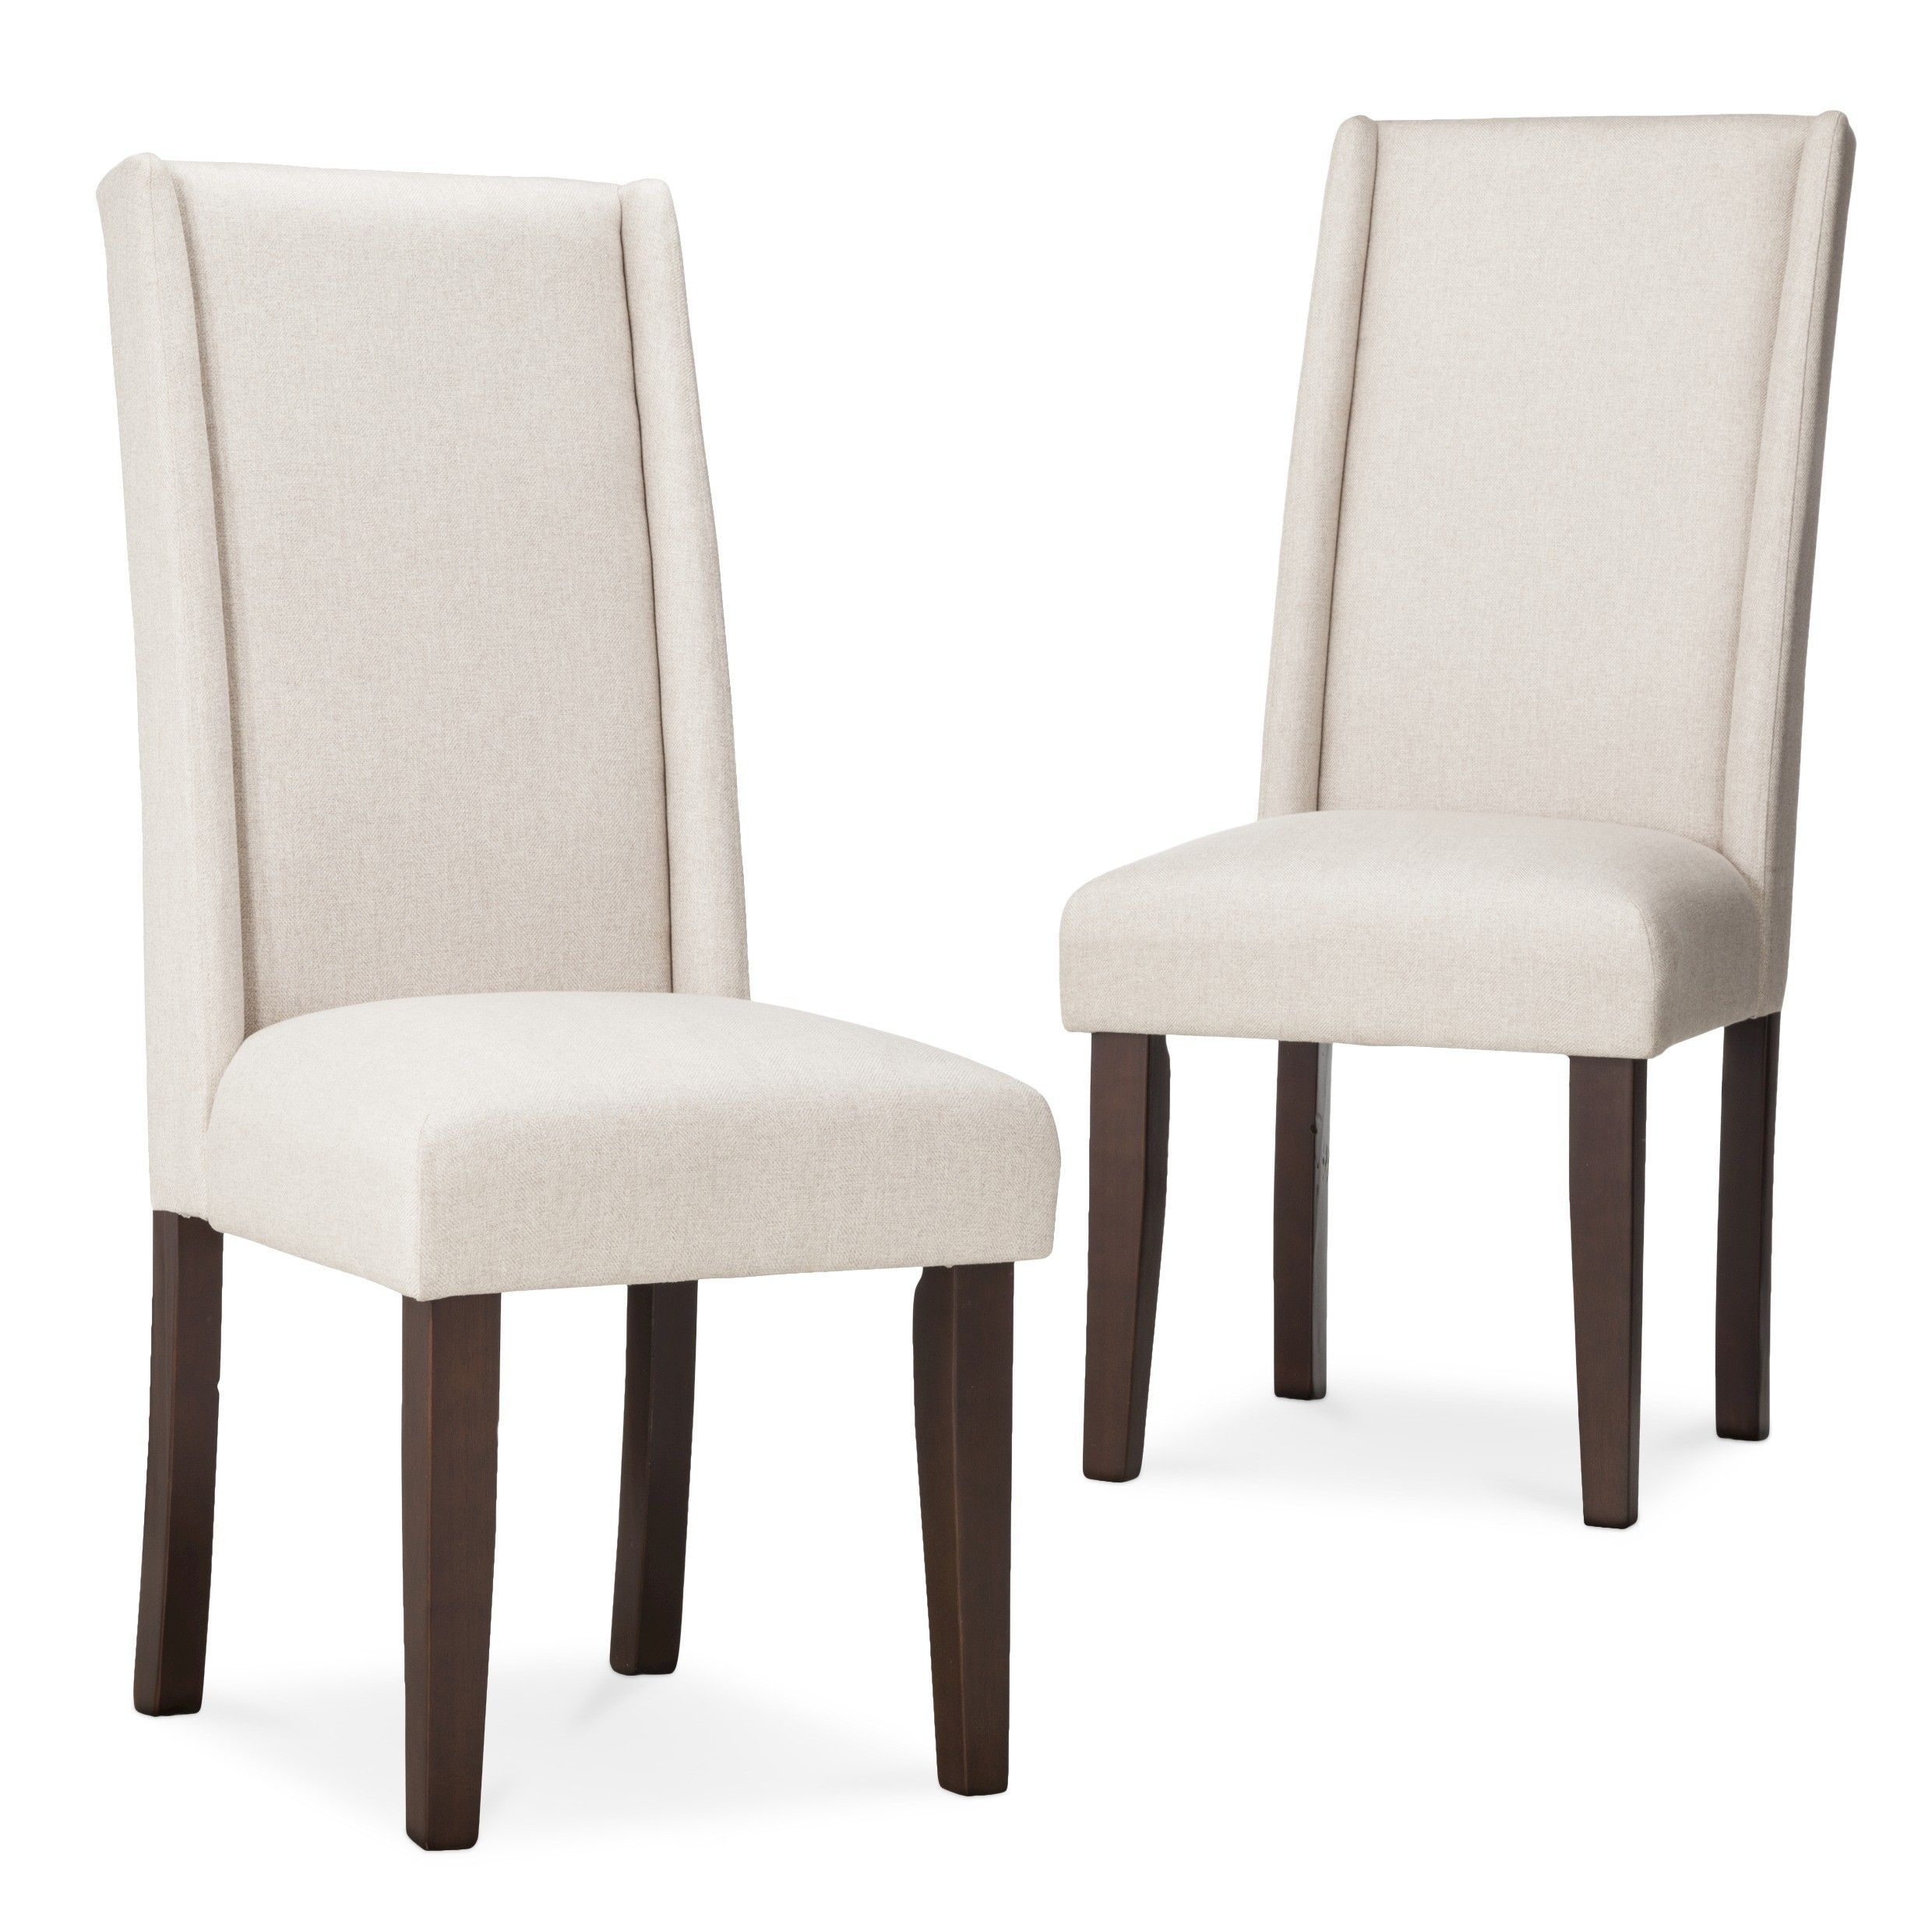 Charlie modern wingback dining chair set of 2 target dining room head chairs